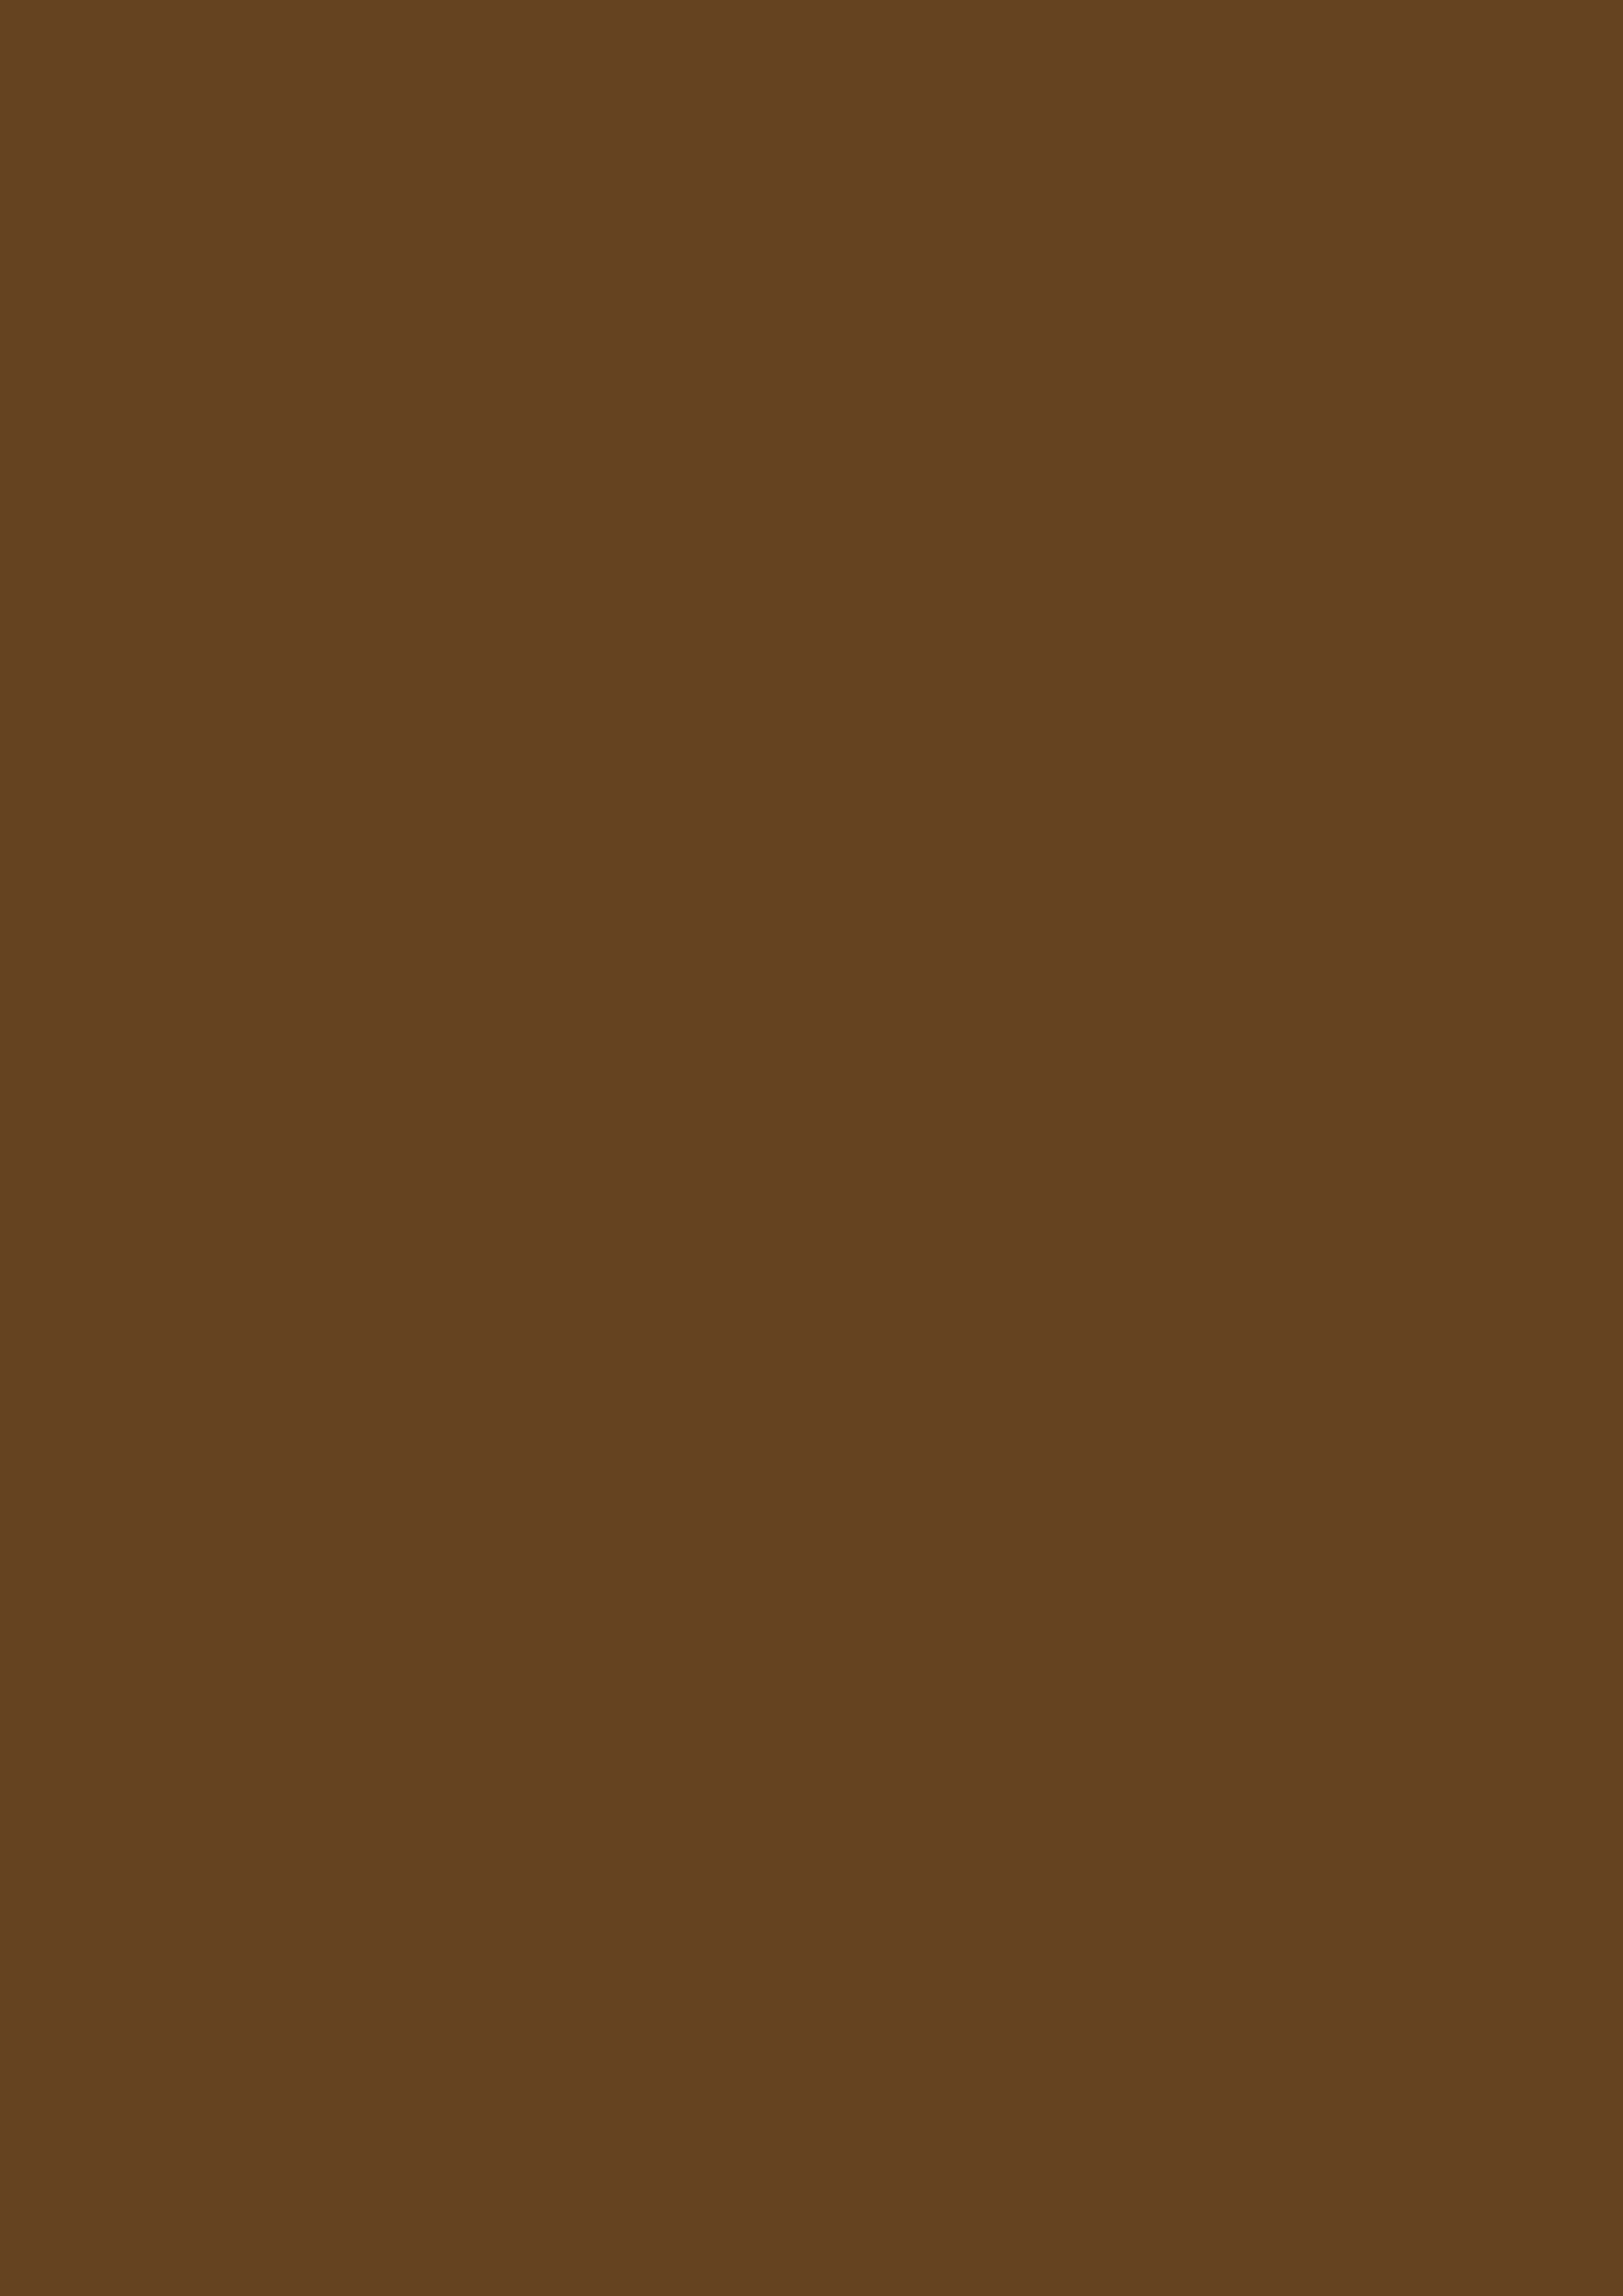 2480x3508 Otter Brown Solid Color Background